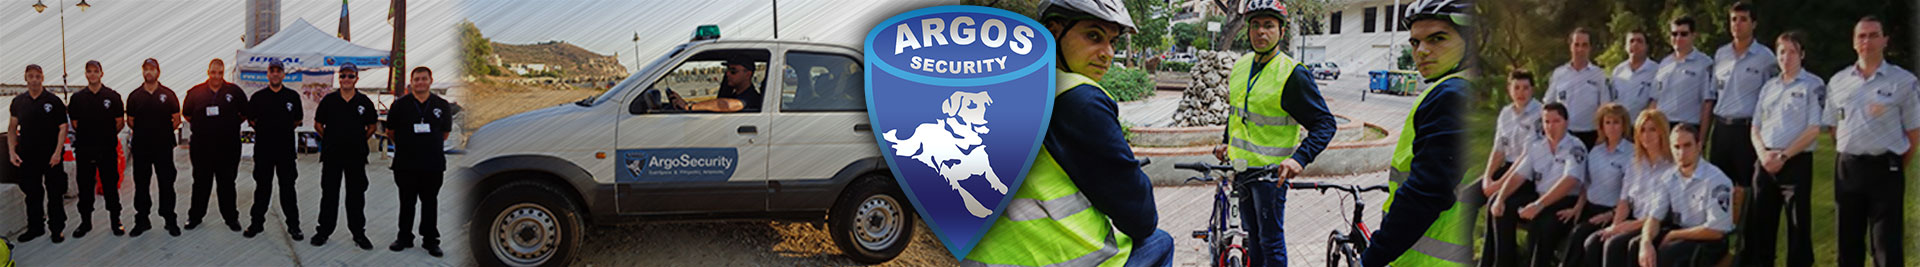 ARGOS SECURITY